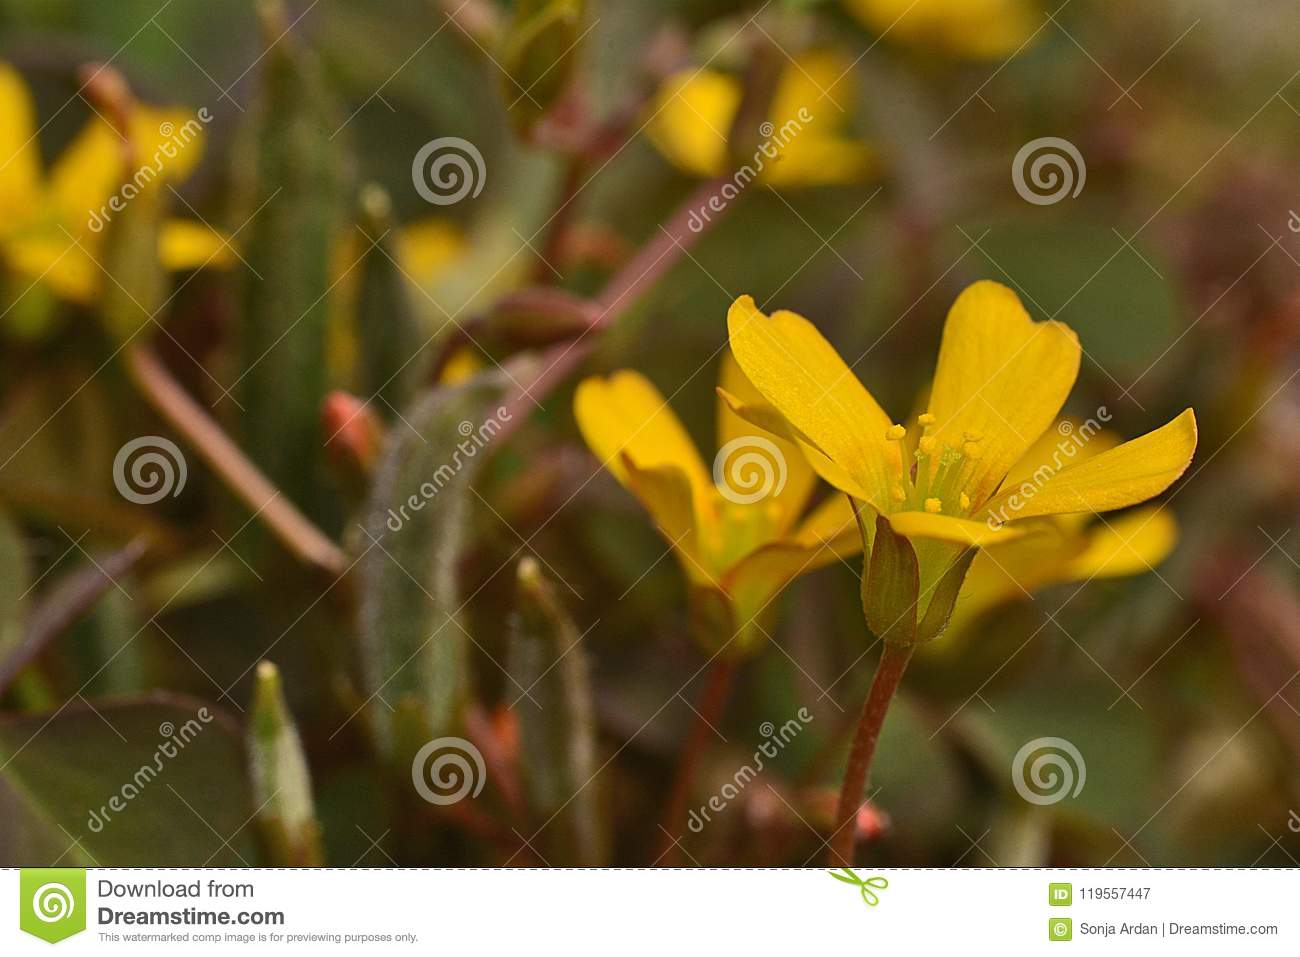 Clover yellow flower choice image fresh lotus flowers tiny yellow flower the leaves of clover as in detail stock image mightylinksfo